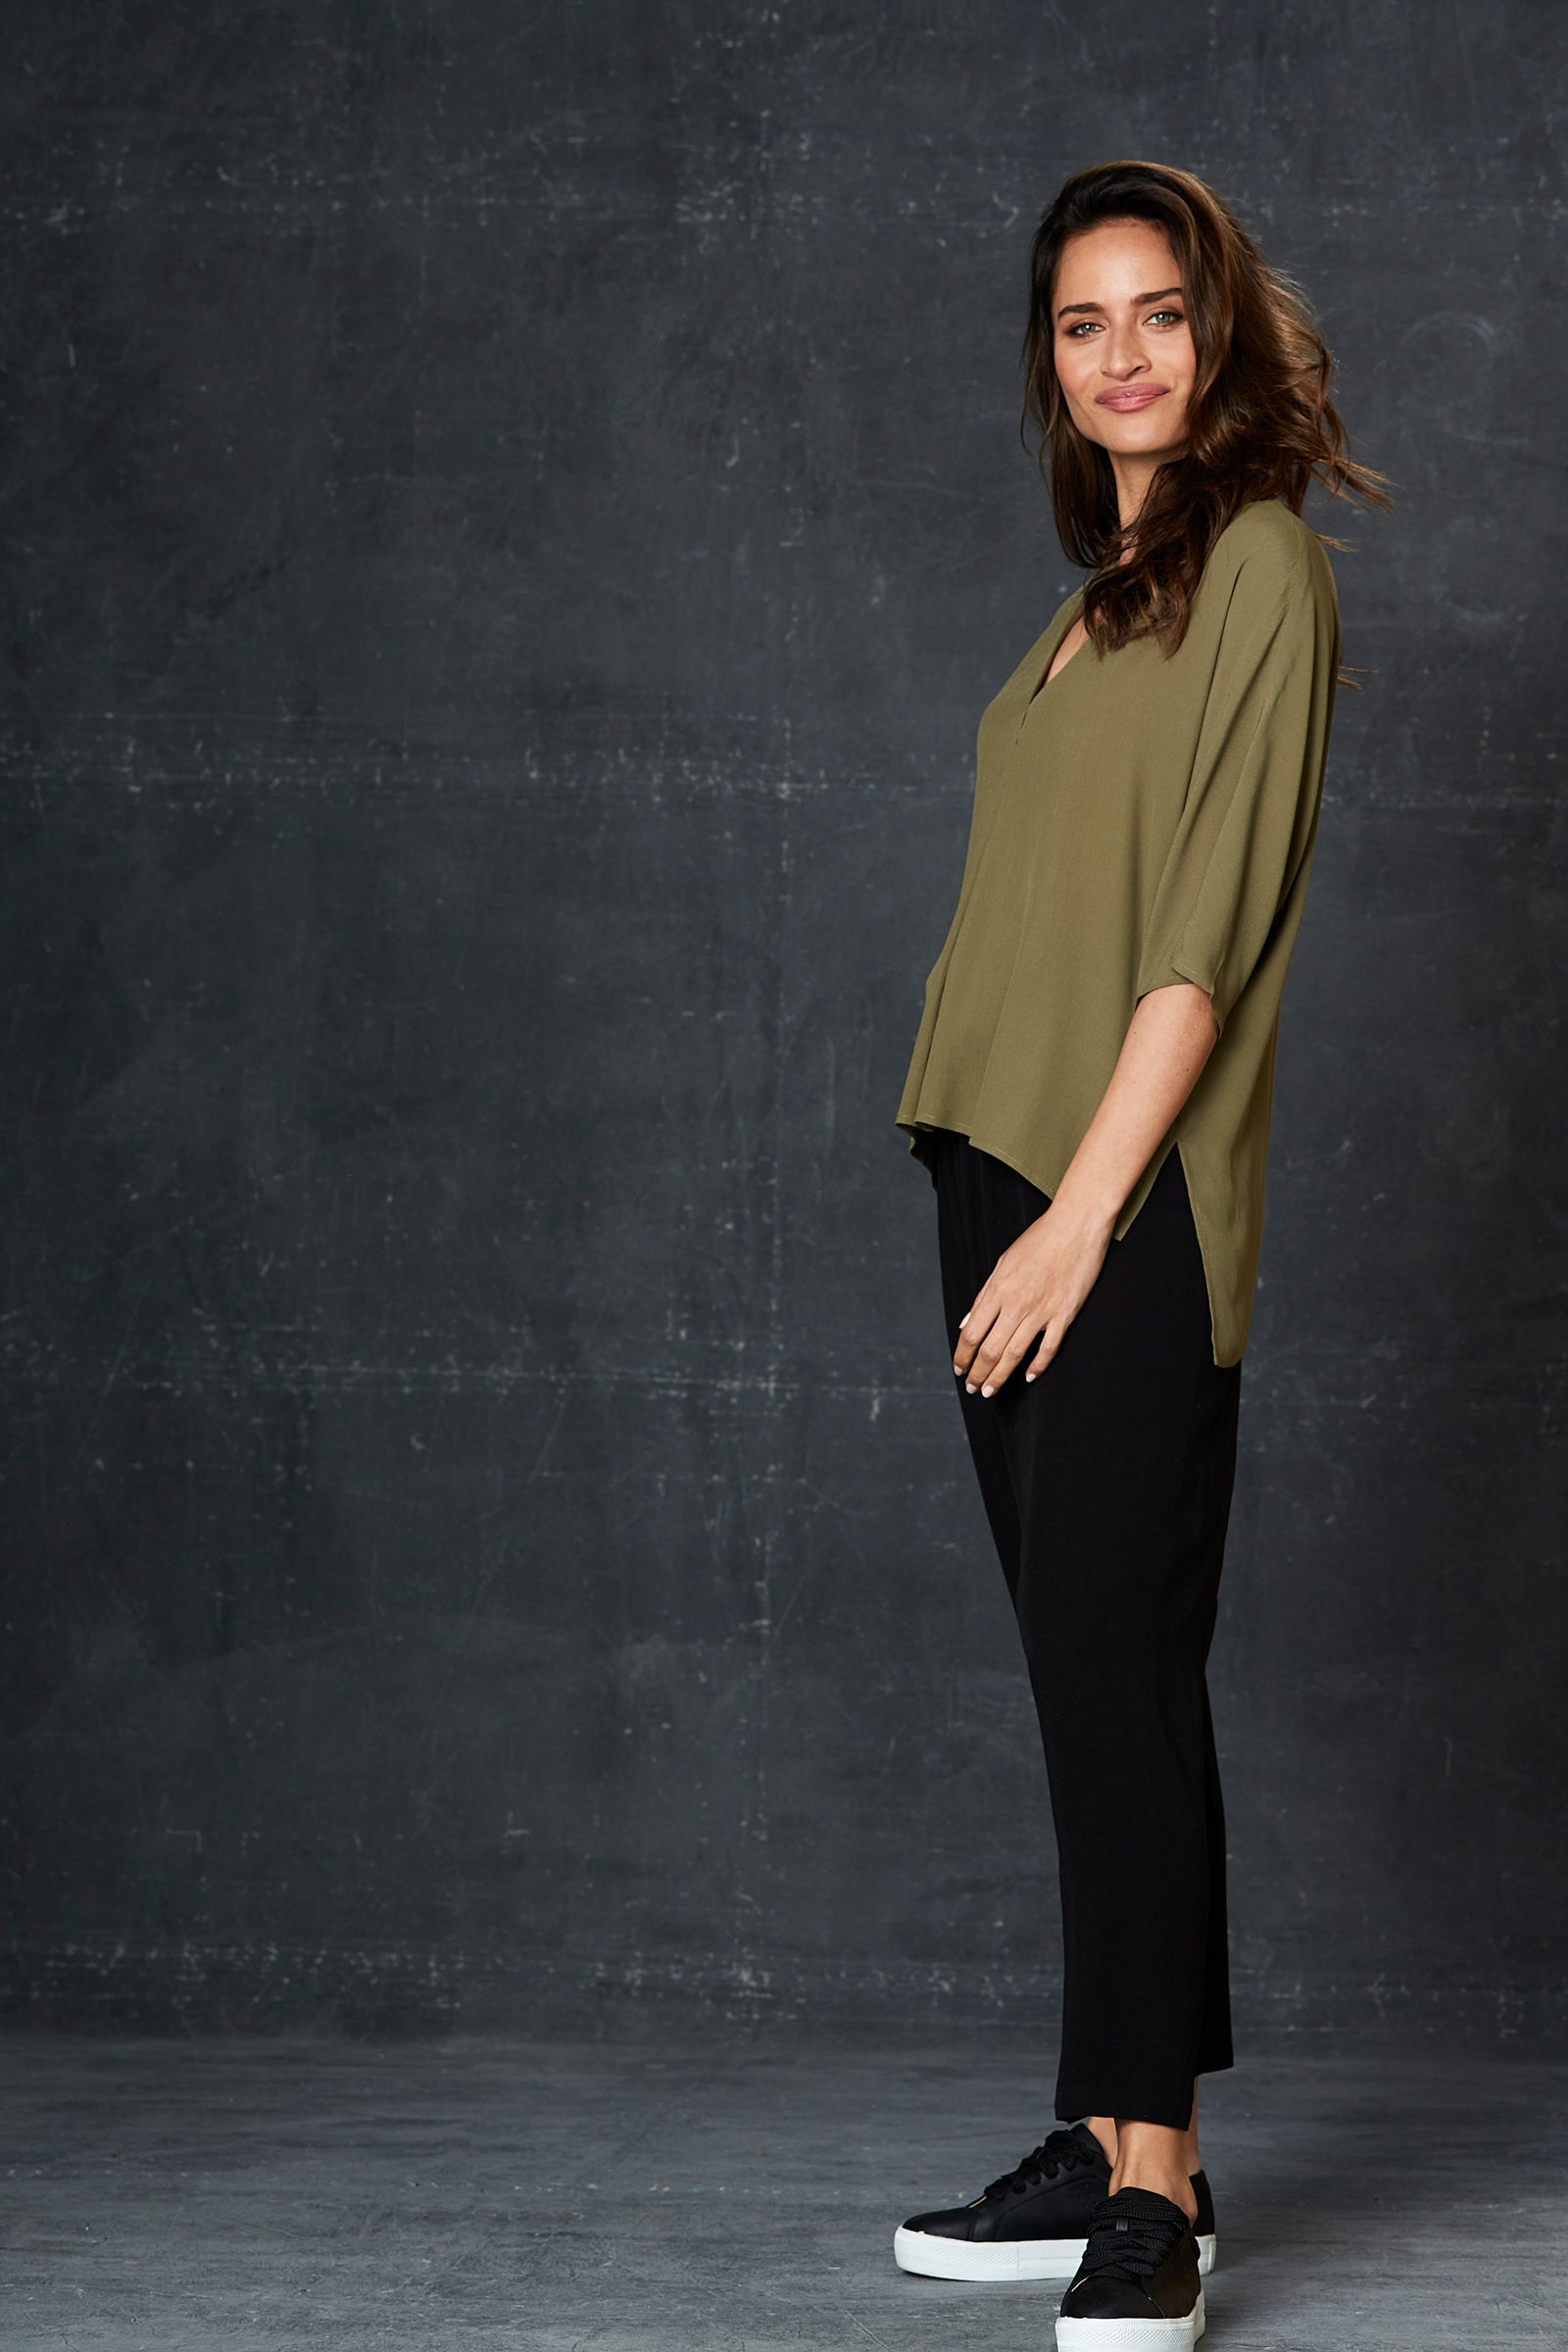 Staycation Top - Moss - eb&ive Clothing - Top S/S